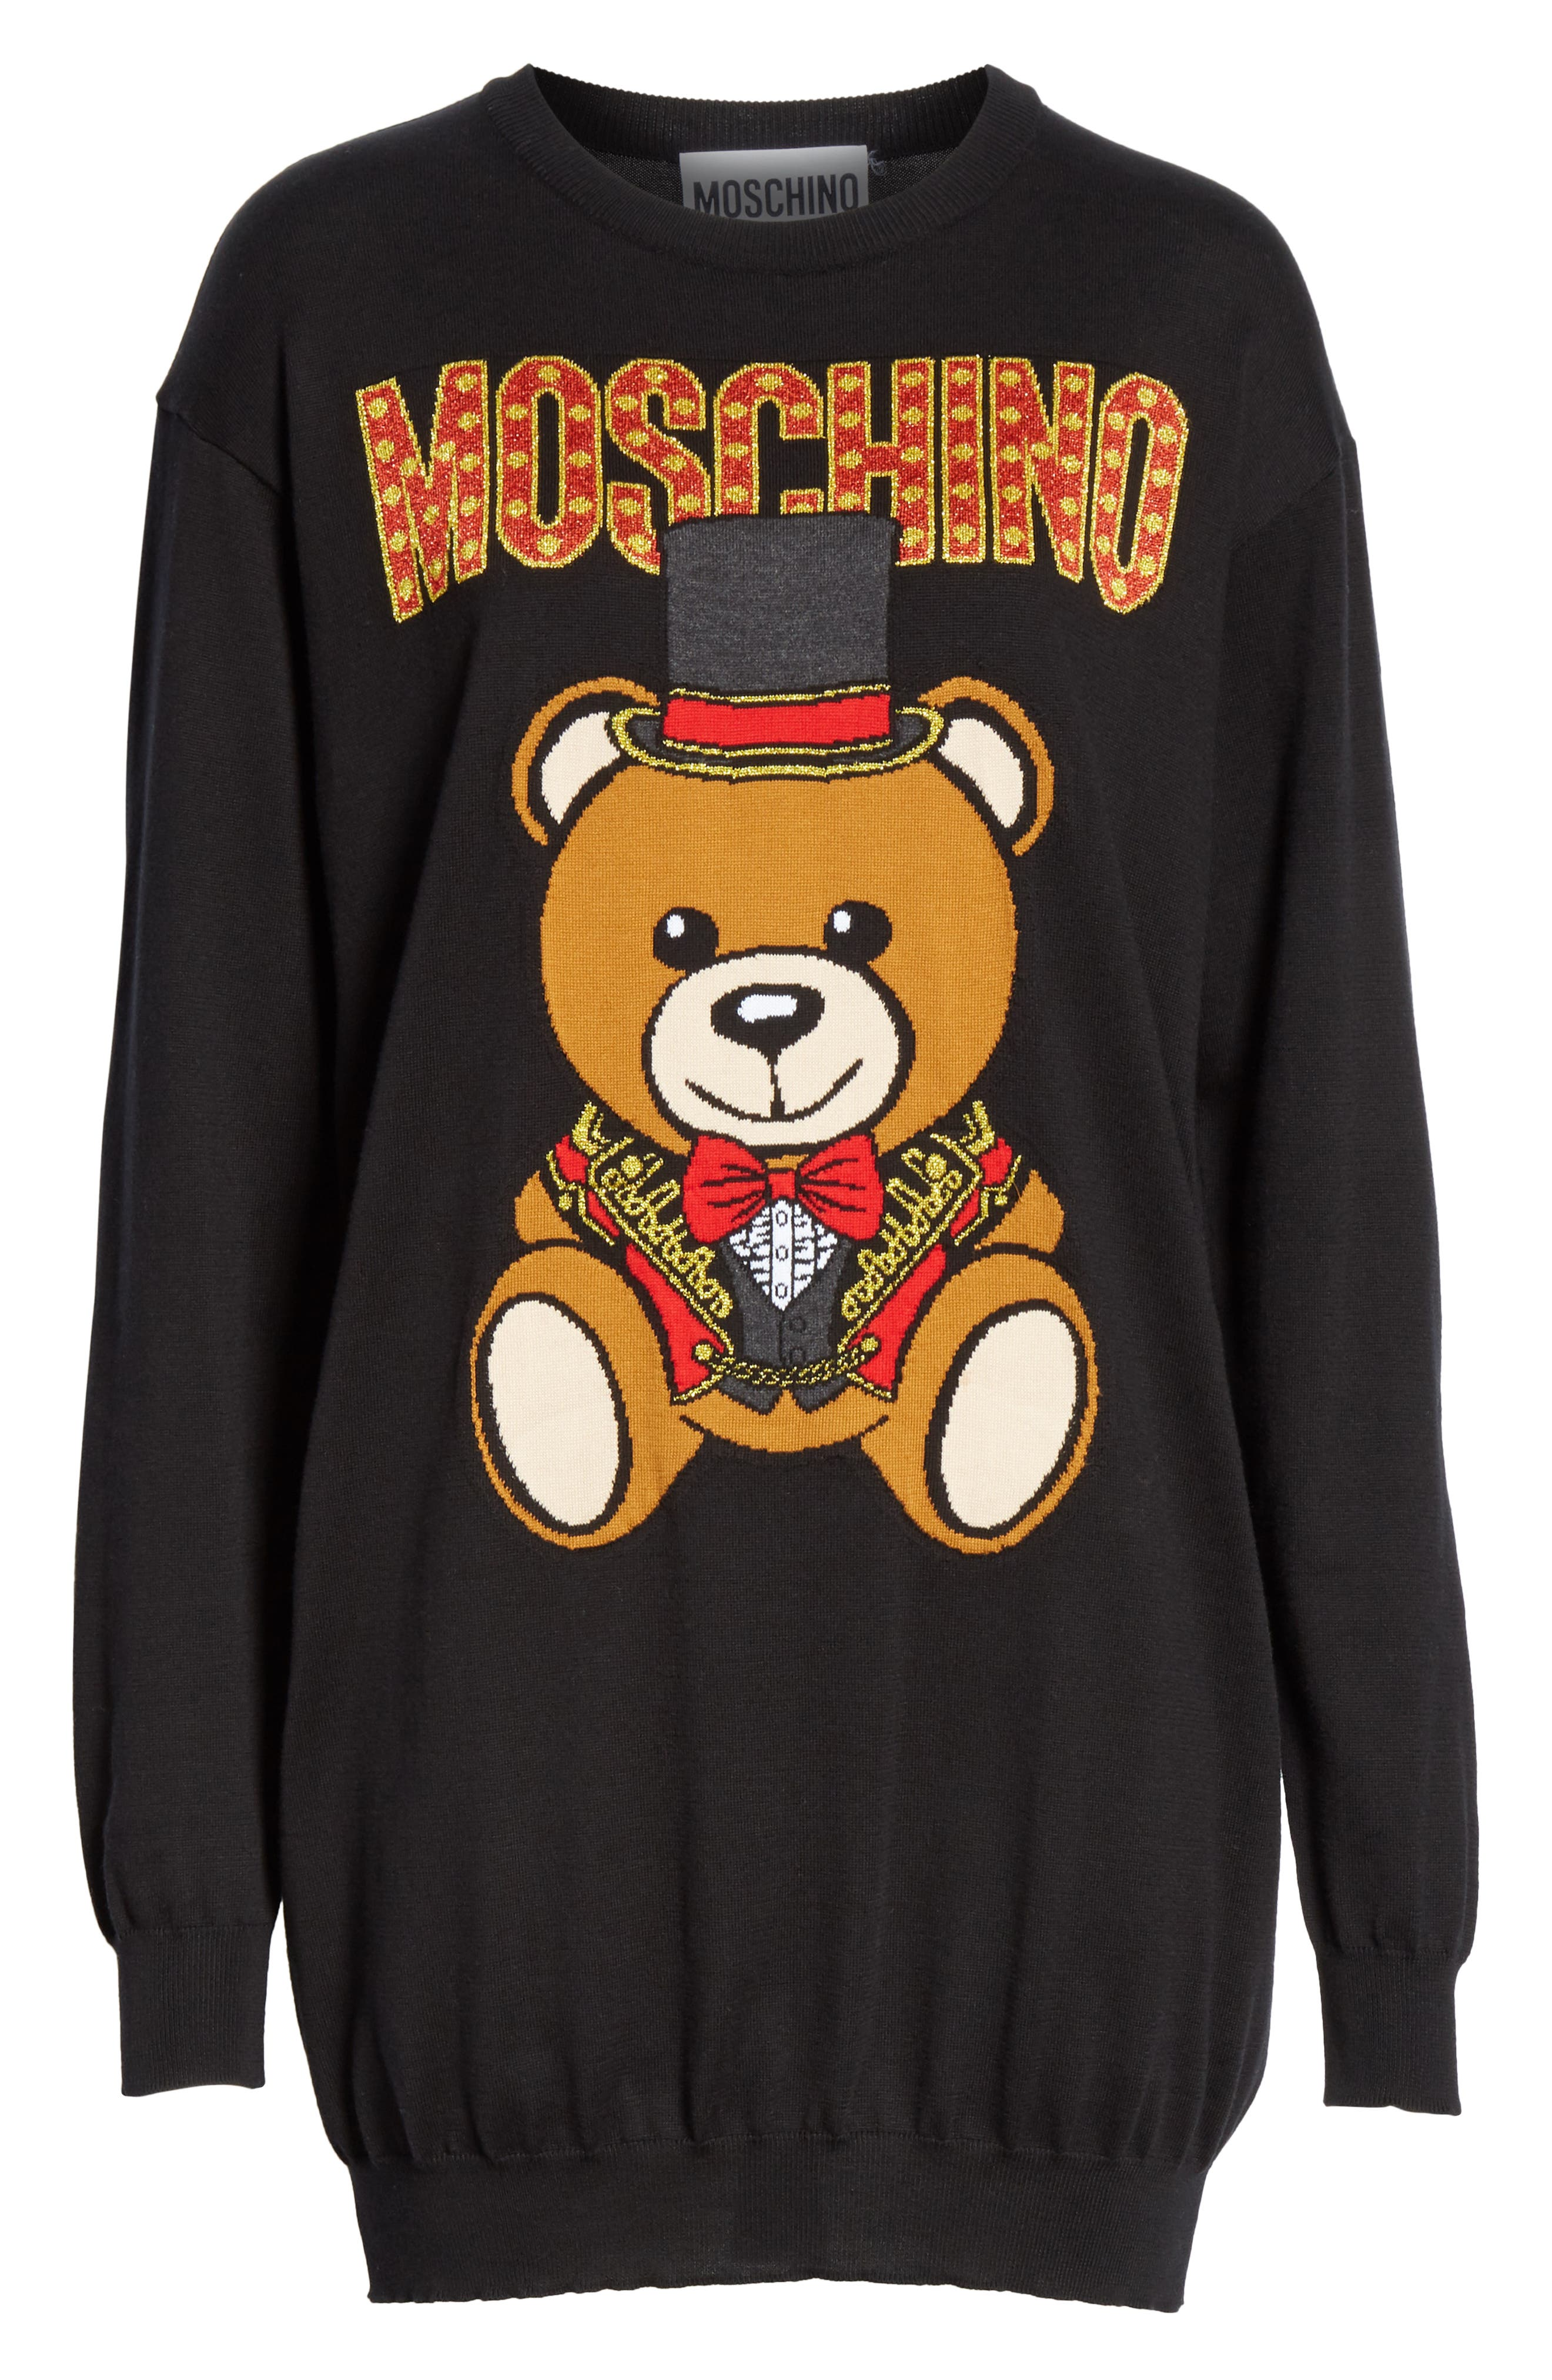 MOSCHINO, Circus Teddy Sweater Dress, Alternate thumbnail 6, color, BLACK